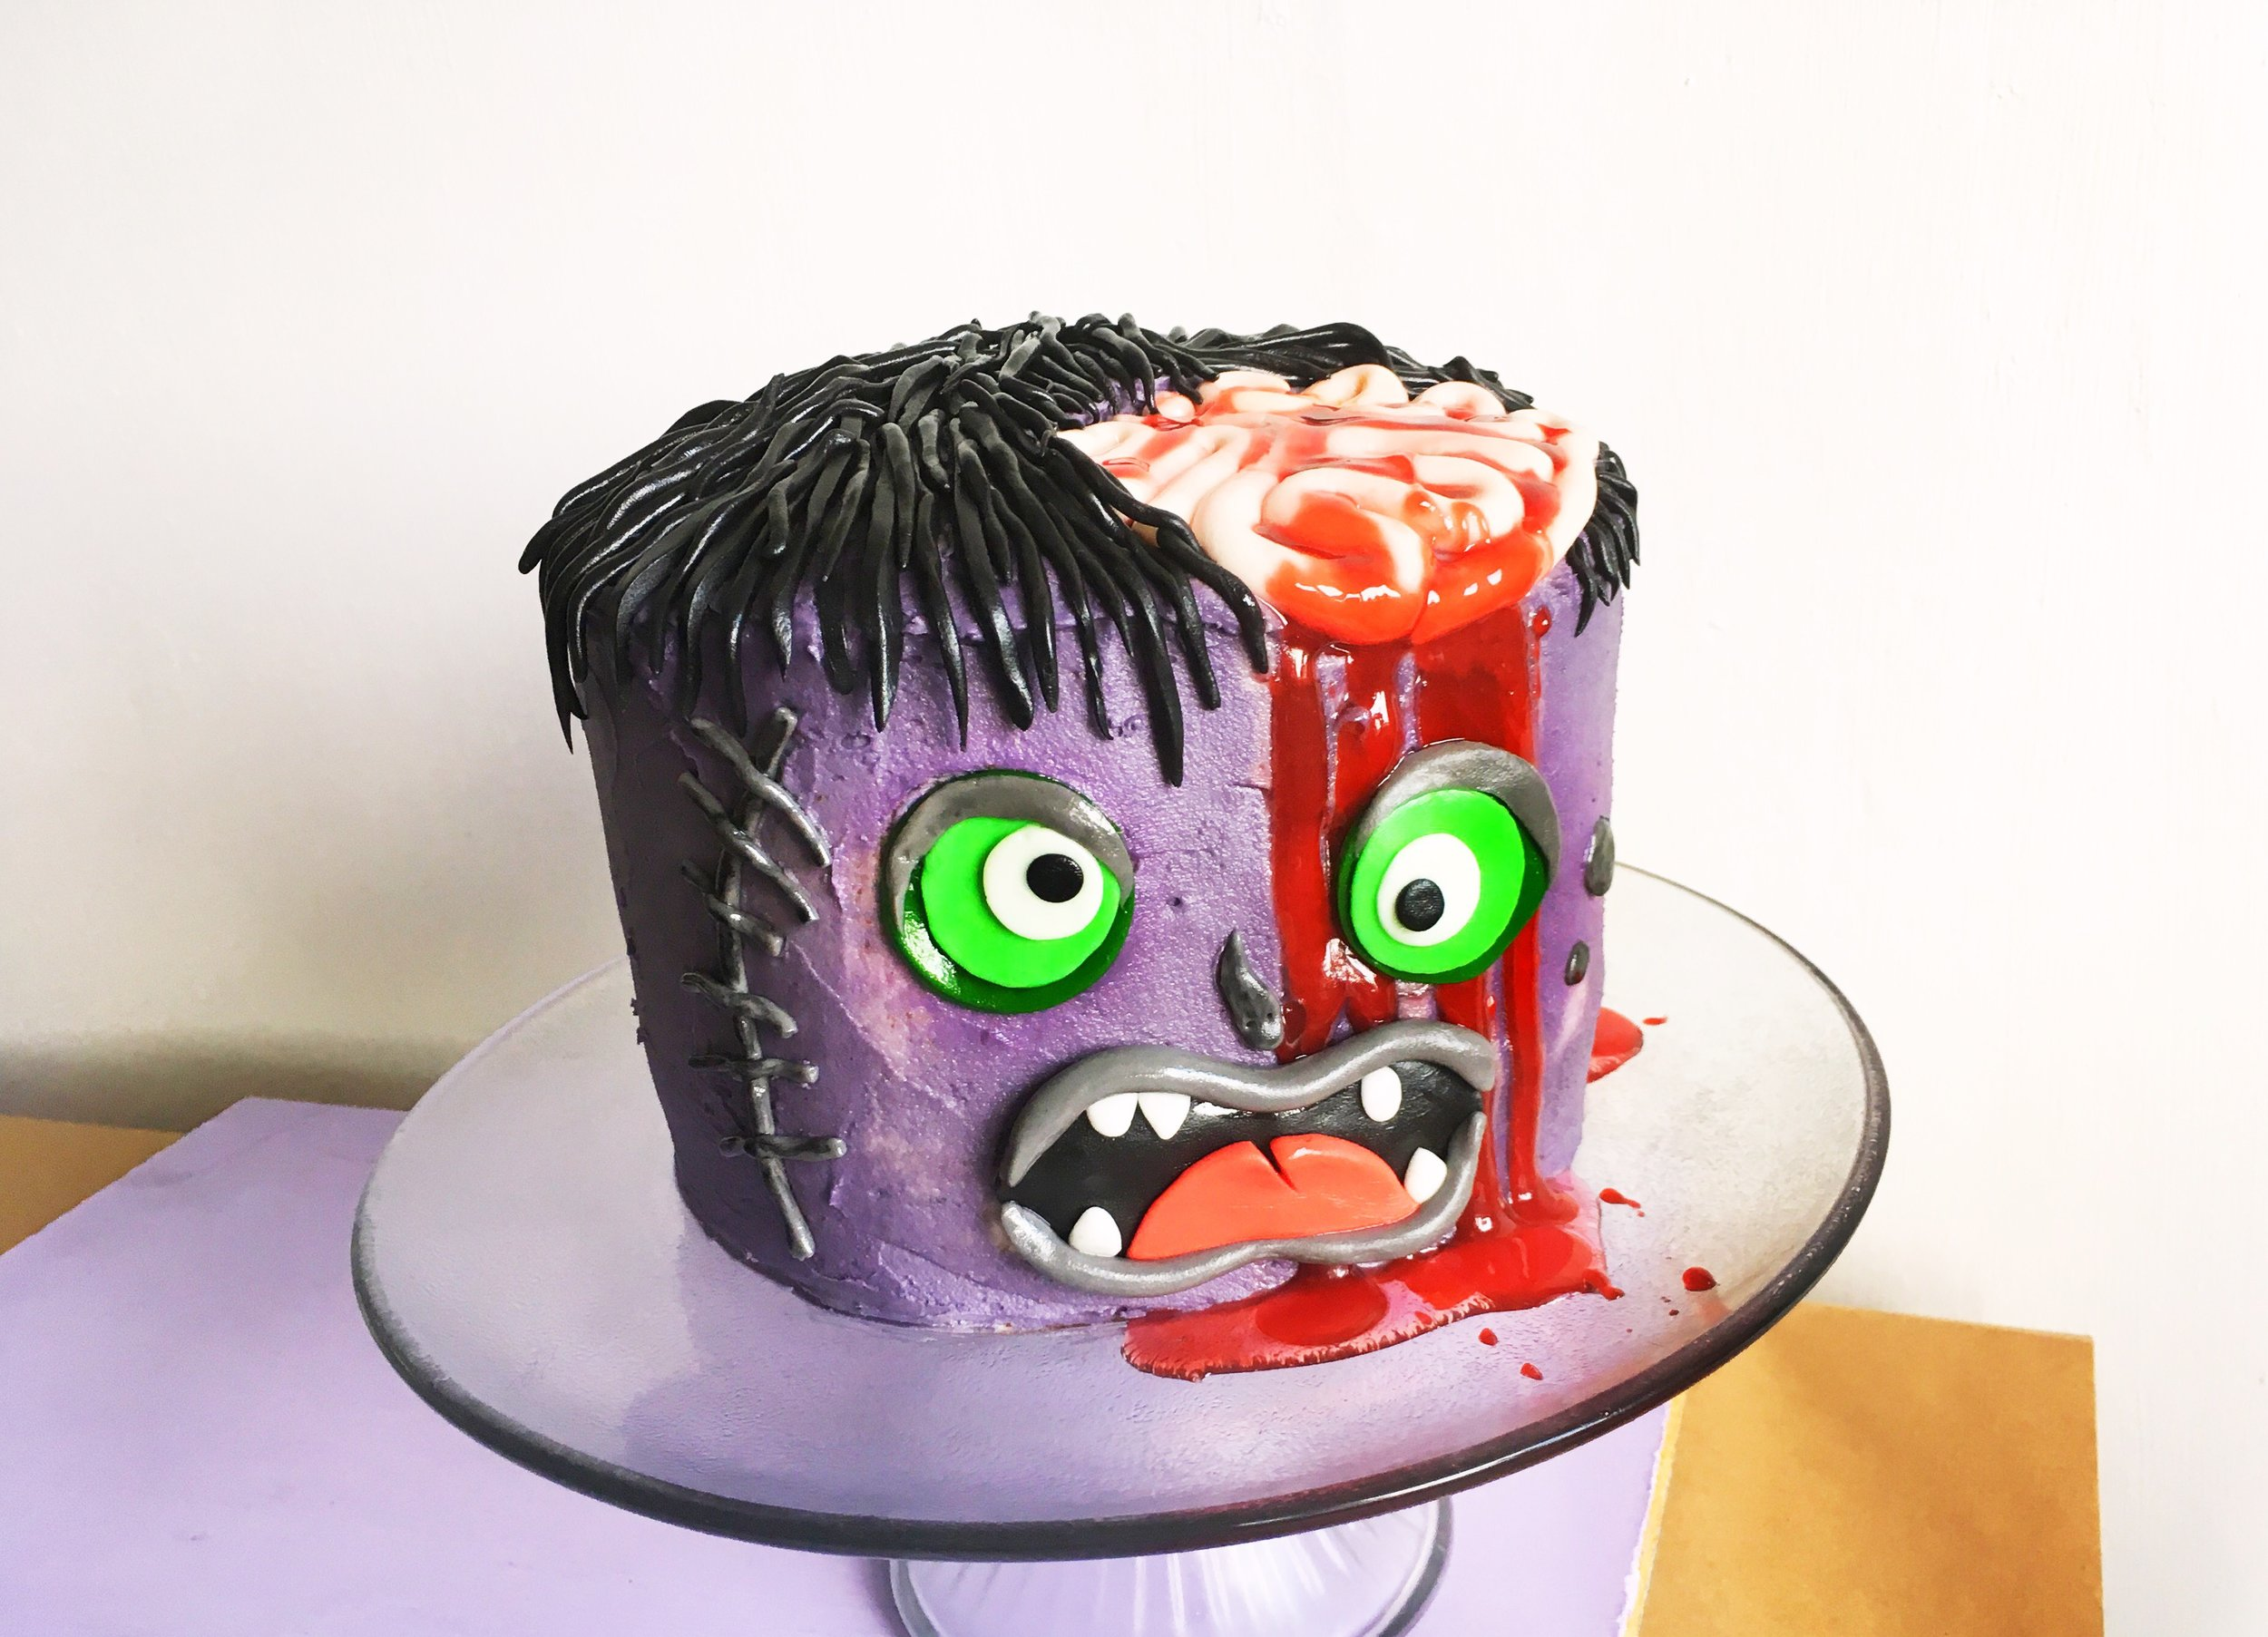 How To Make An Amazing Halloween Monster Cake